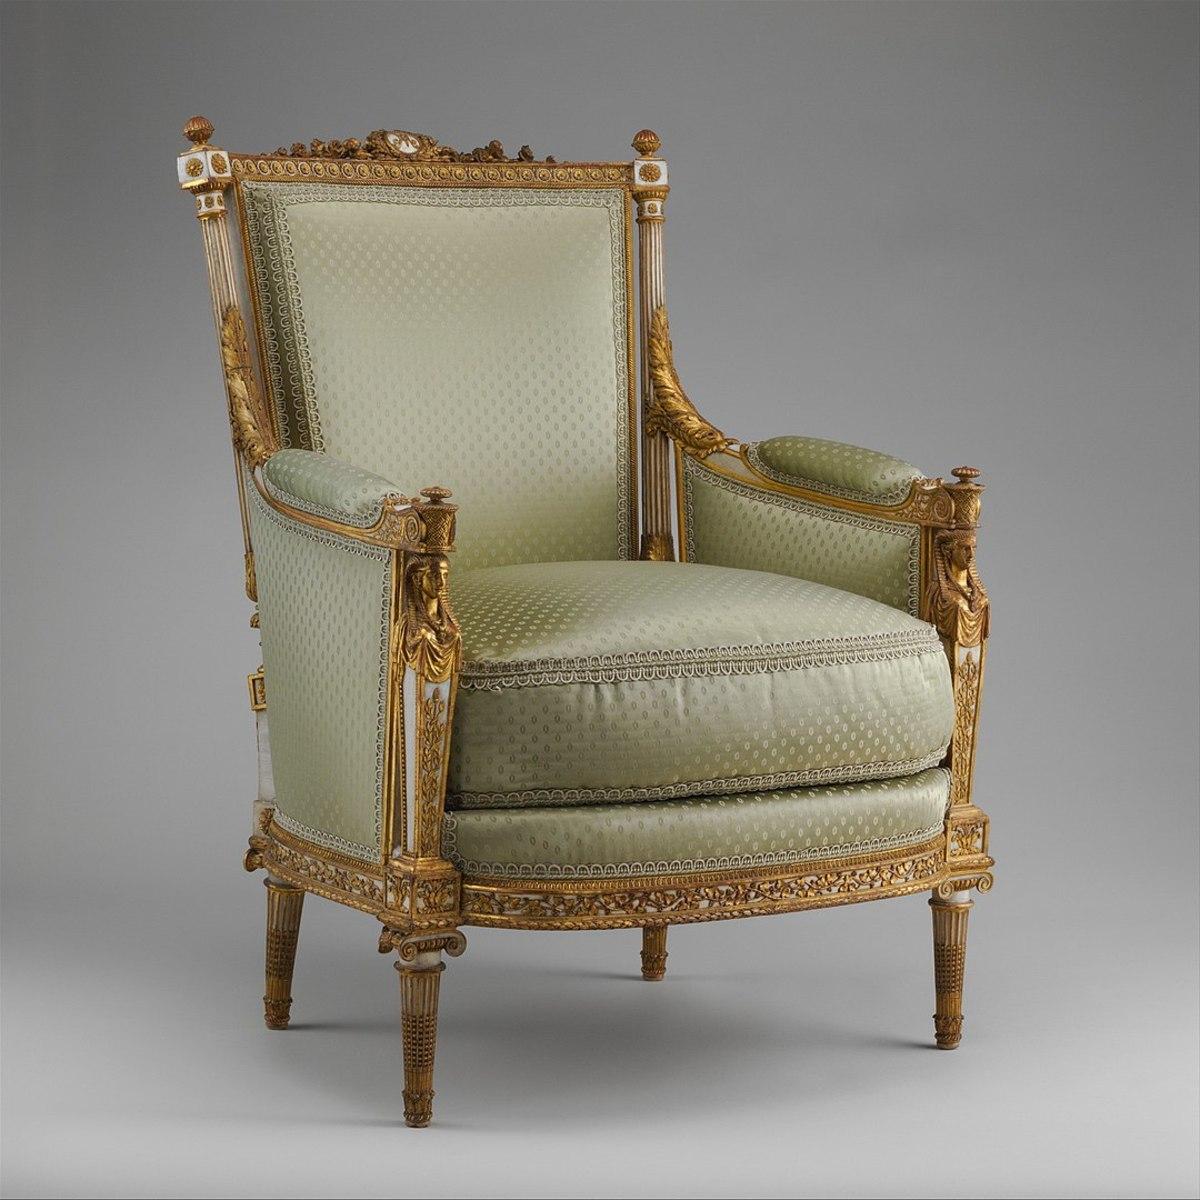 This French bergère, circa 1788, is carved from walnut and upholstered in embroidered silk.